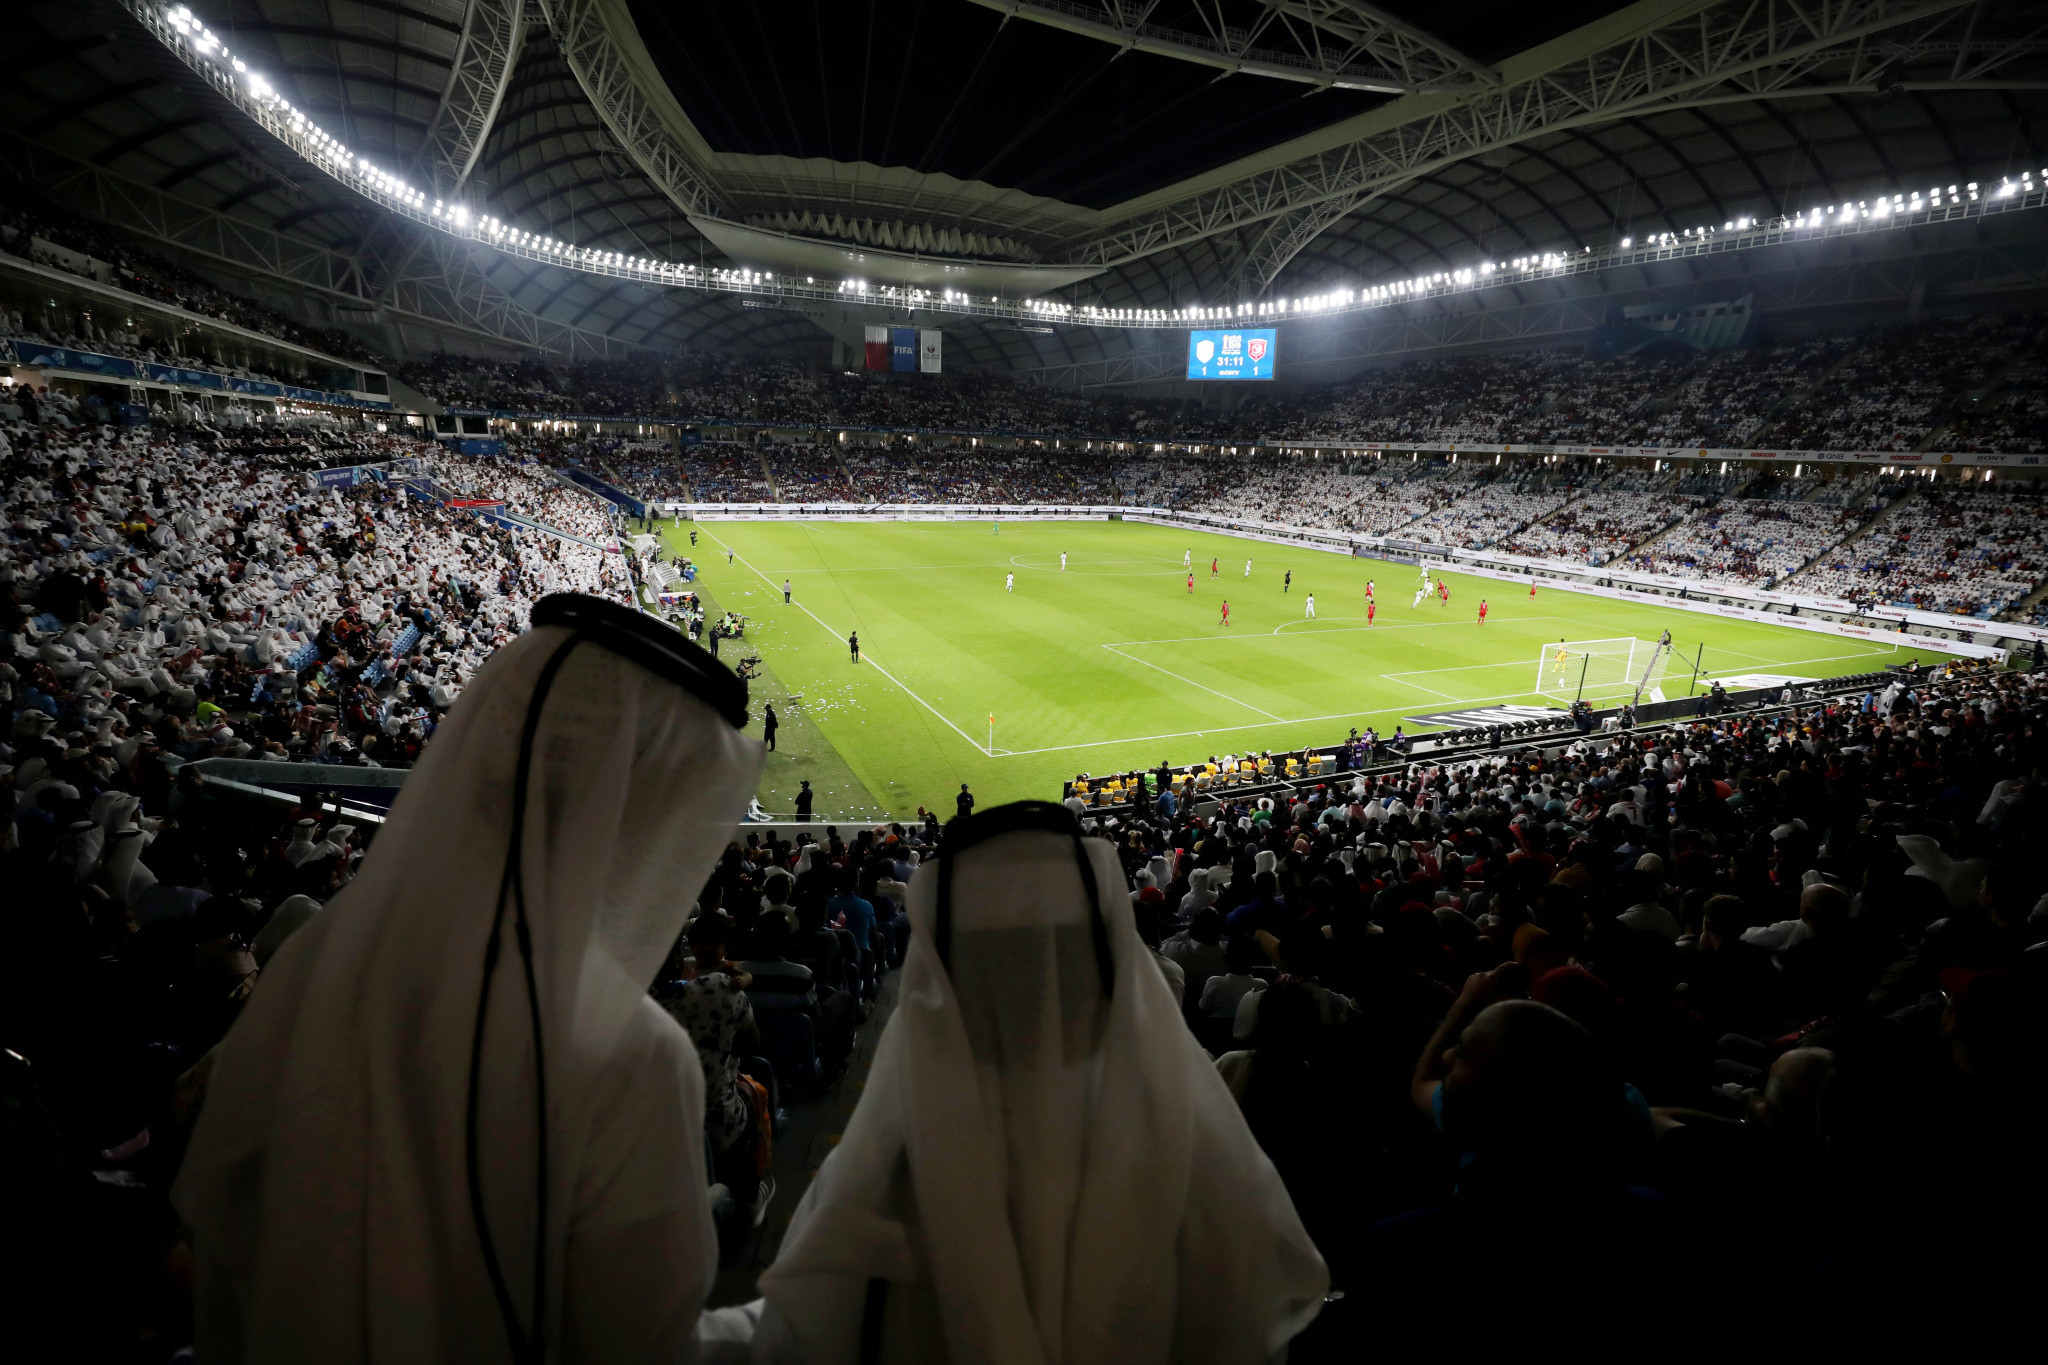 Qatar awarded hosting rights for 2019 and 2020 Club World Cups by FIFA Council